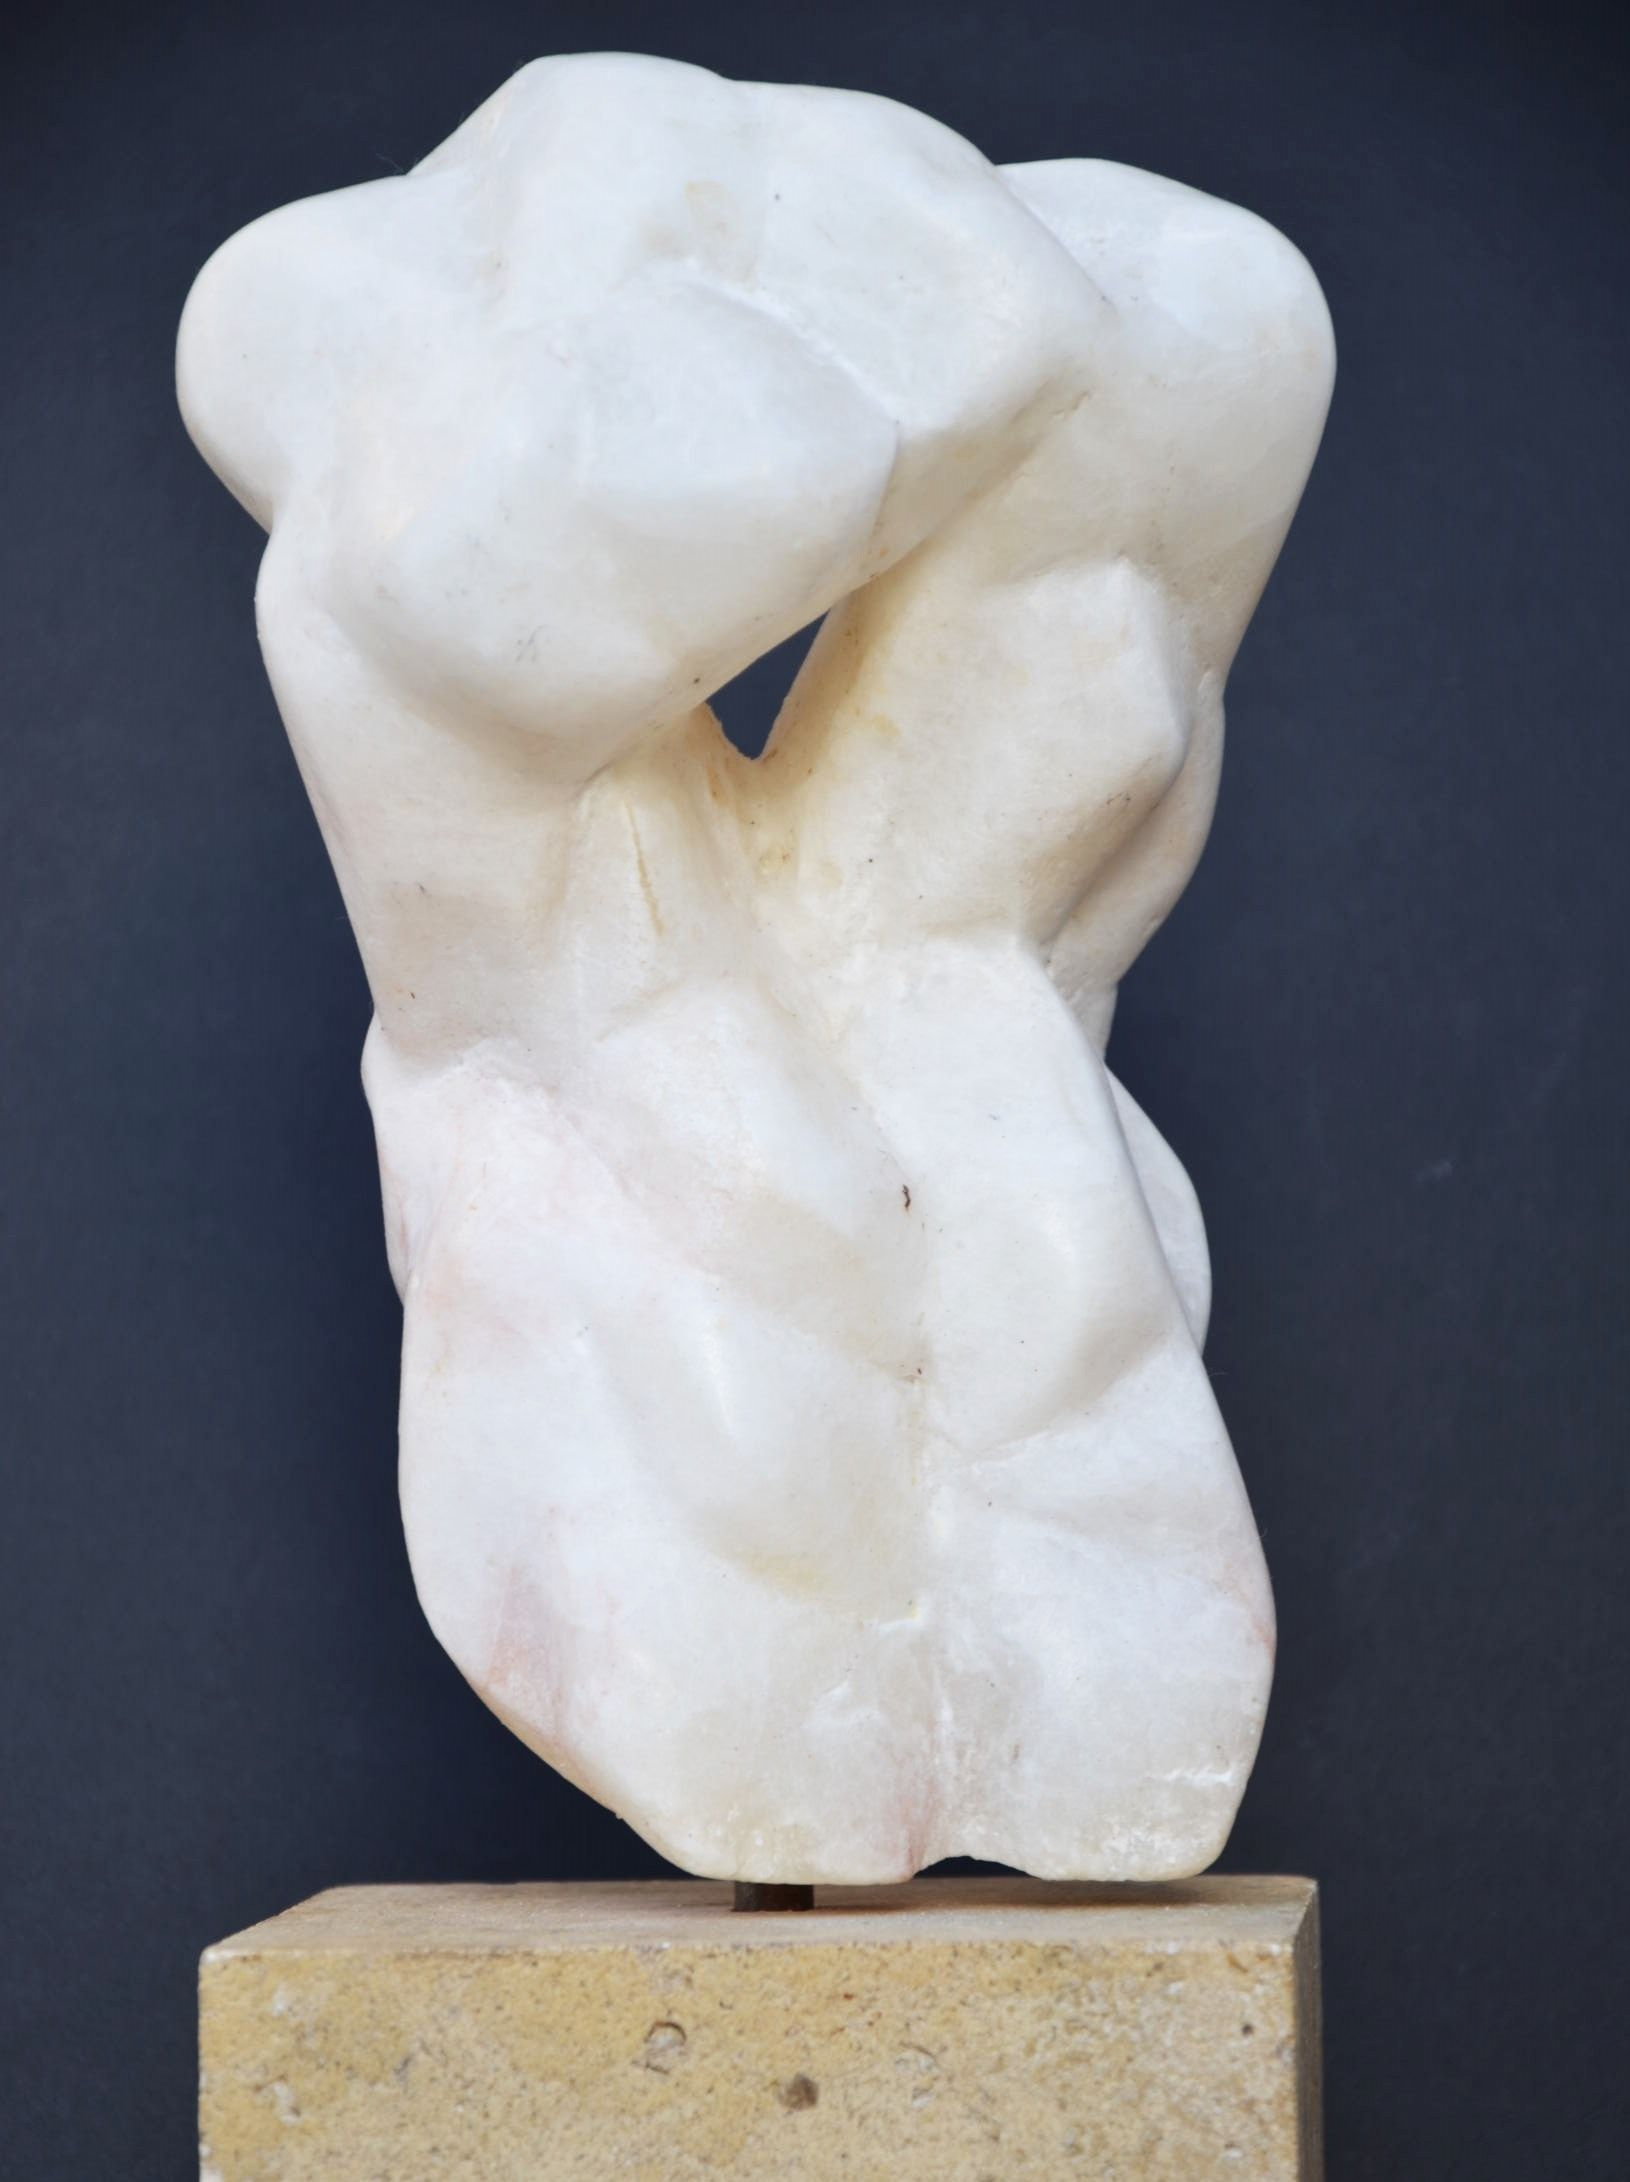 Torse I,Yann Guillon,Sculpture